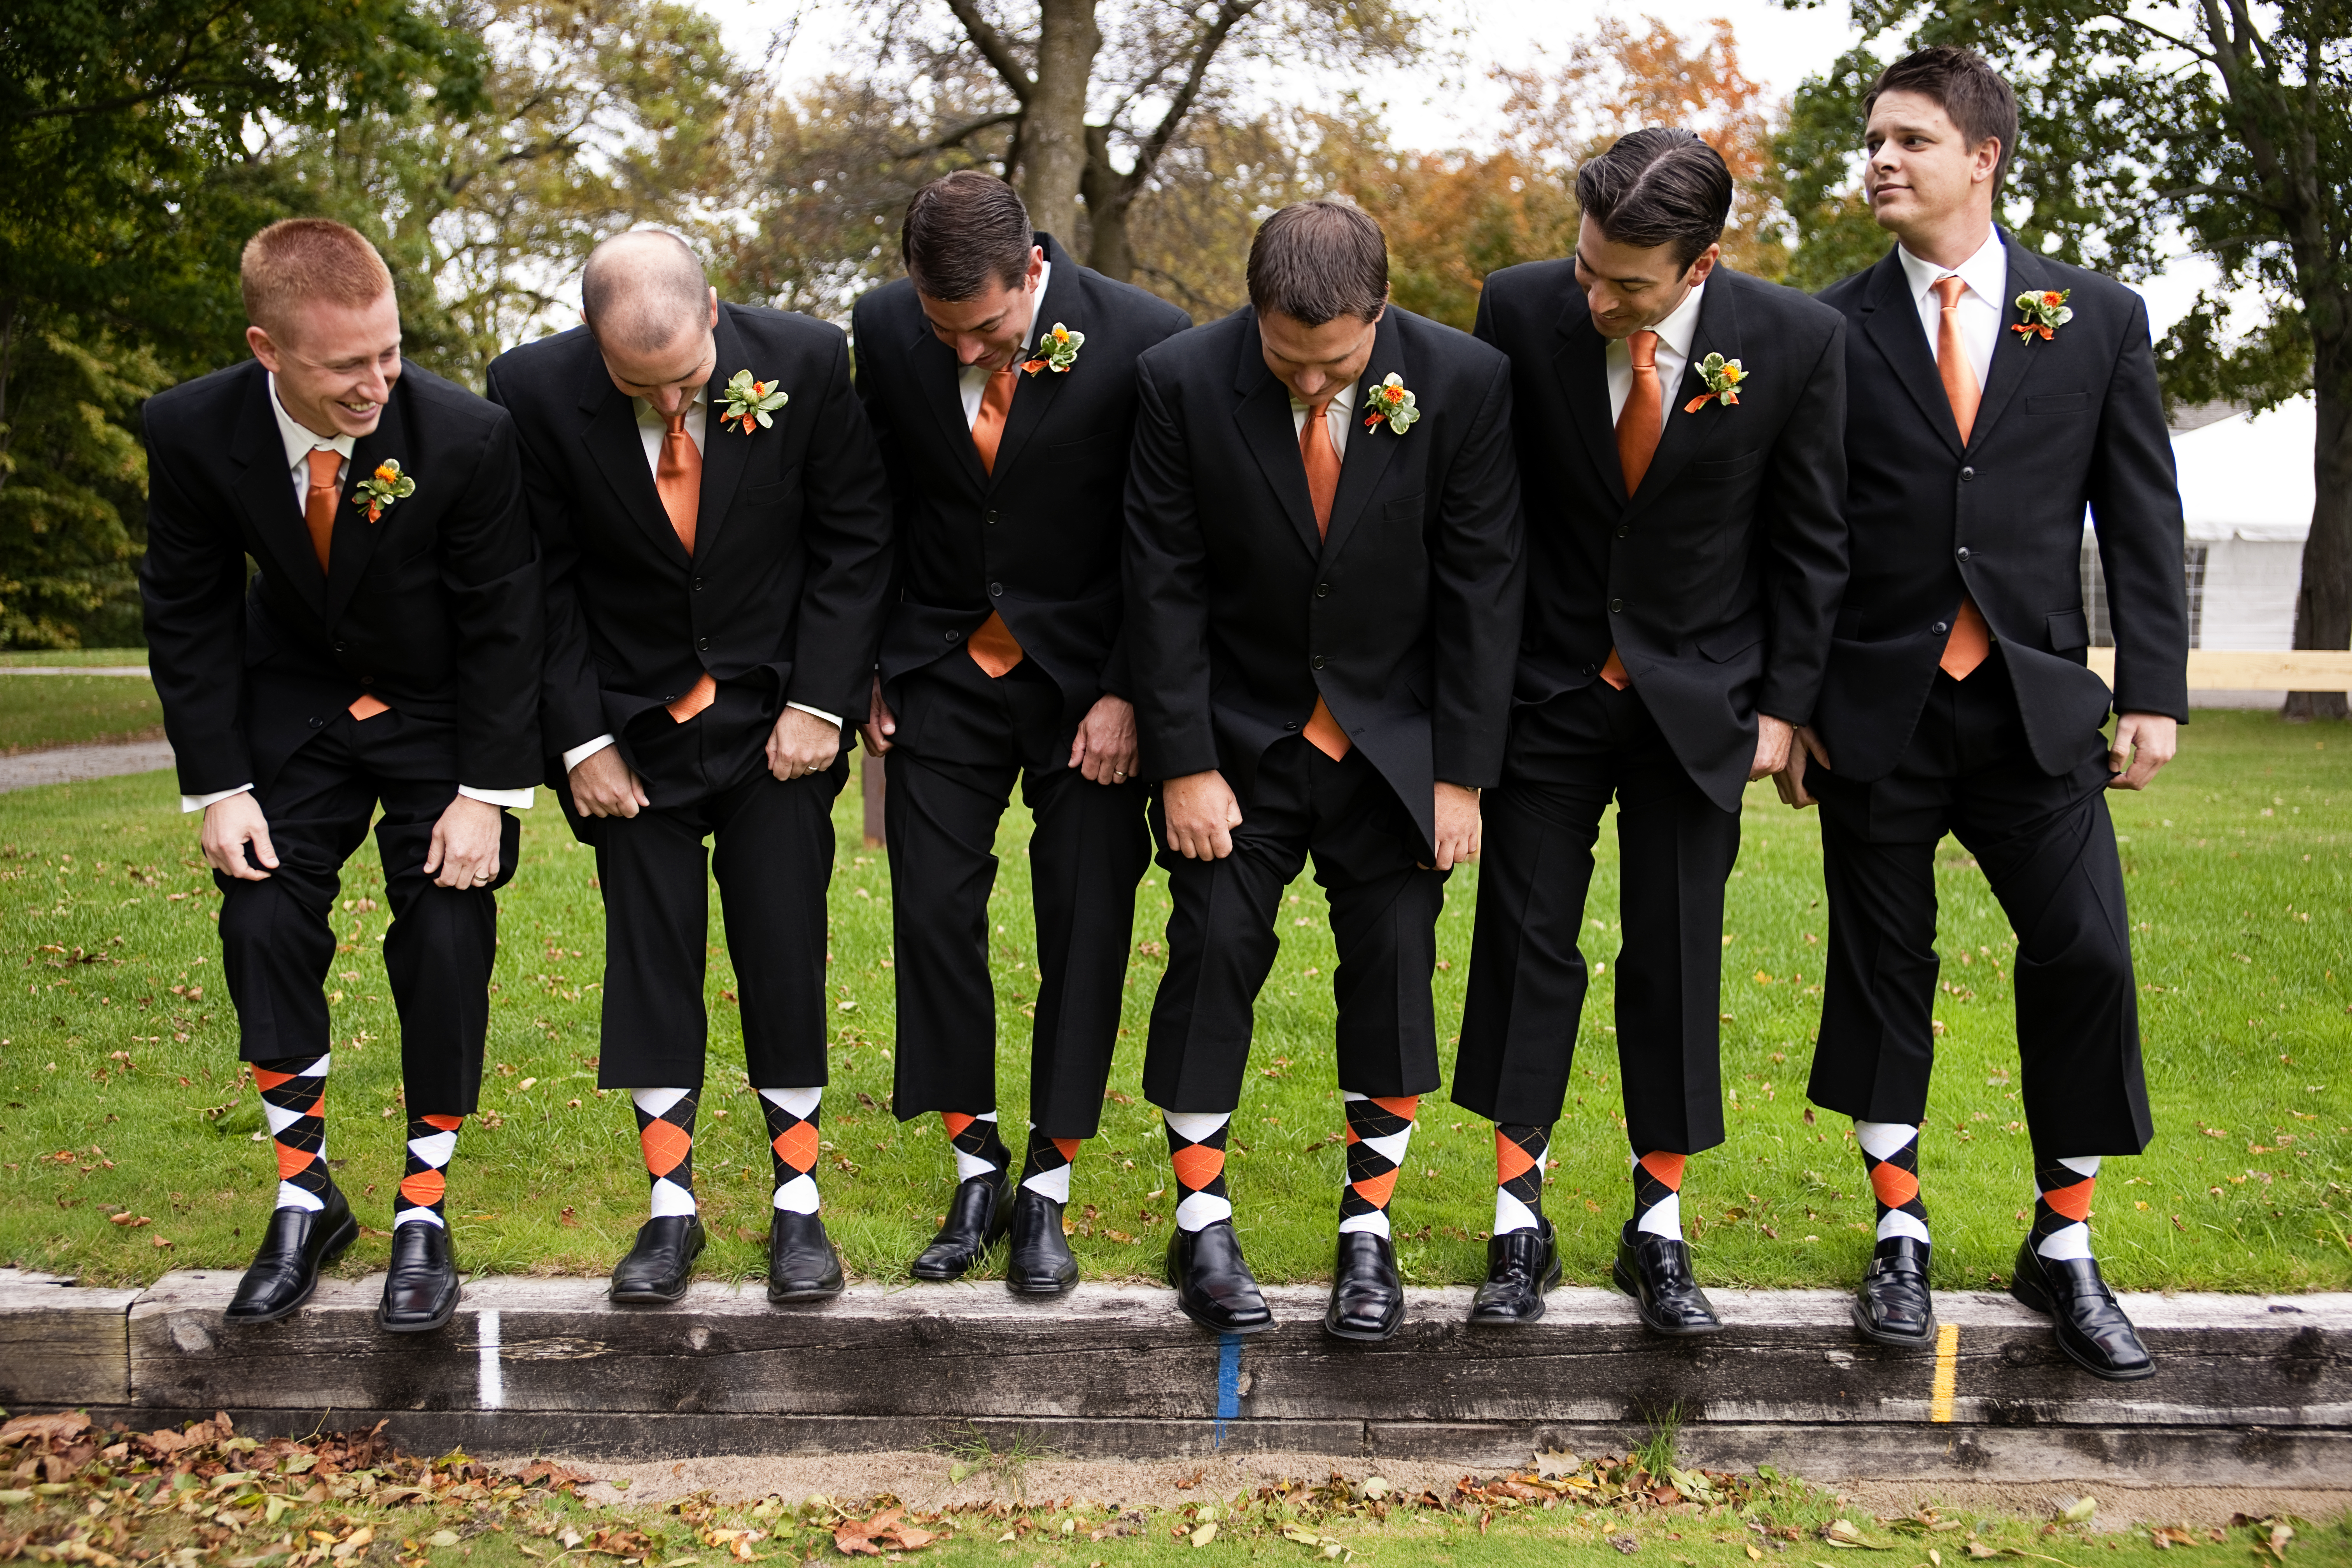 Bridesmaids, Bridesmaids Dresses, Shoes, Fashion, orange, black, gold, Faber photography